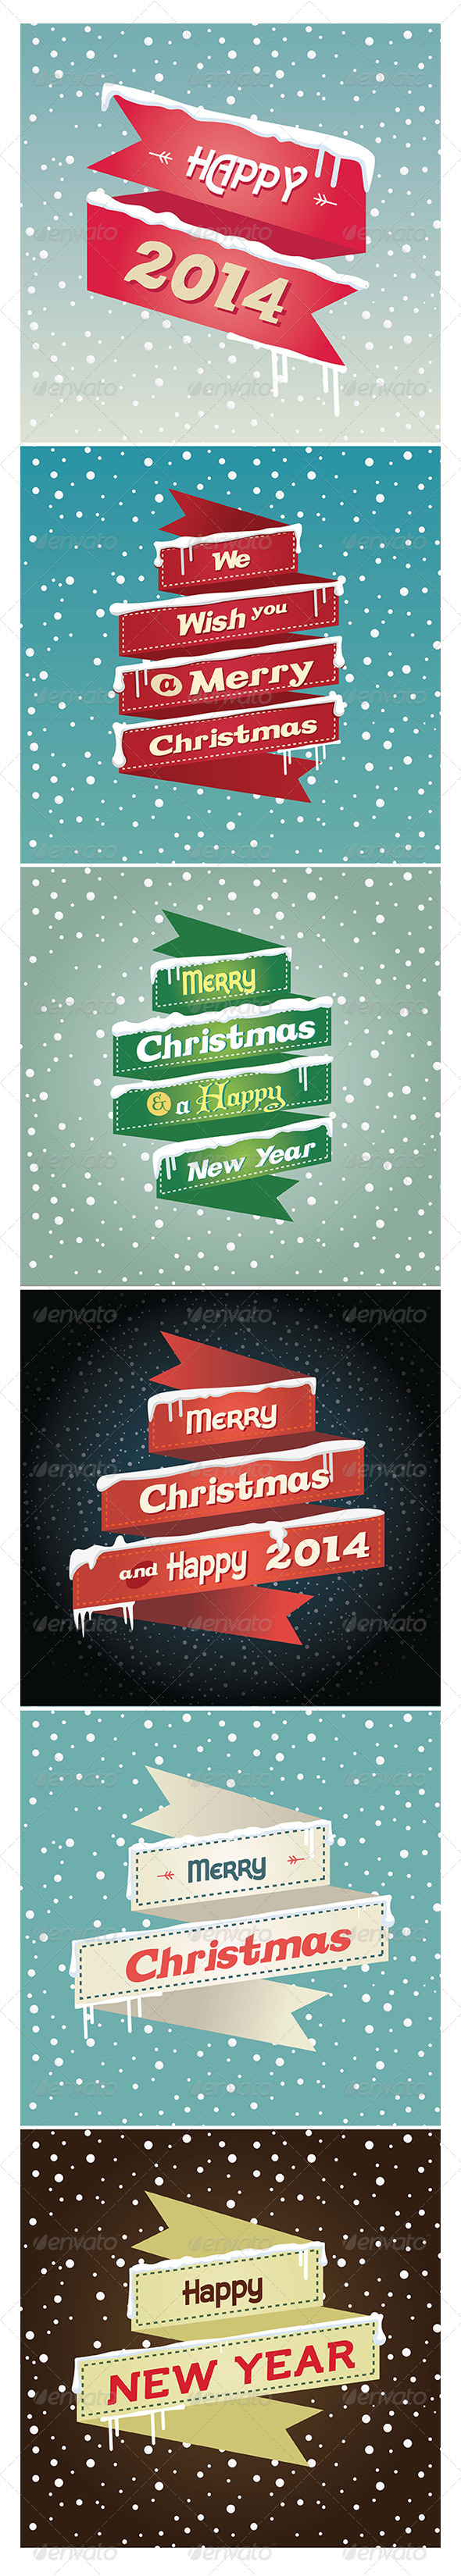 Flat Robbons Christmas and Happy New Year 2014 - Vectors